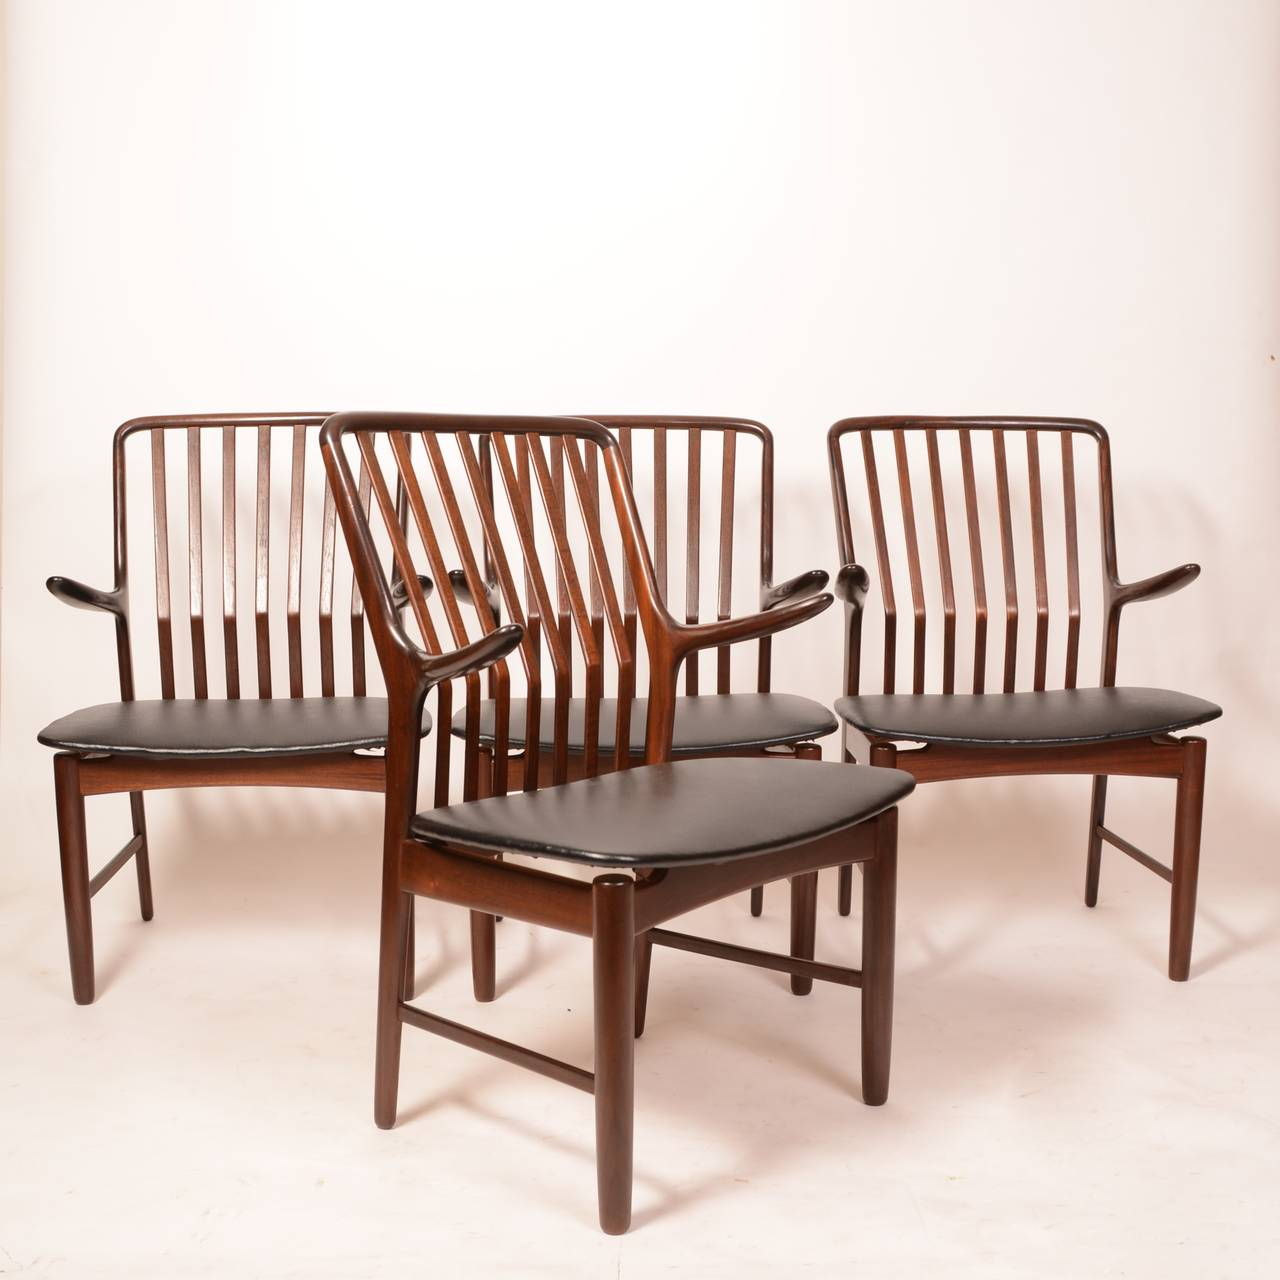 Danish Arm Chairs by Svend A. Madsen for Moreddi, Set of 2 For Sale 4